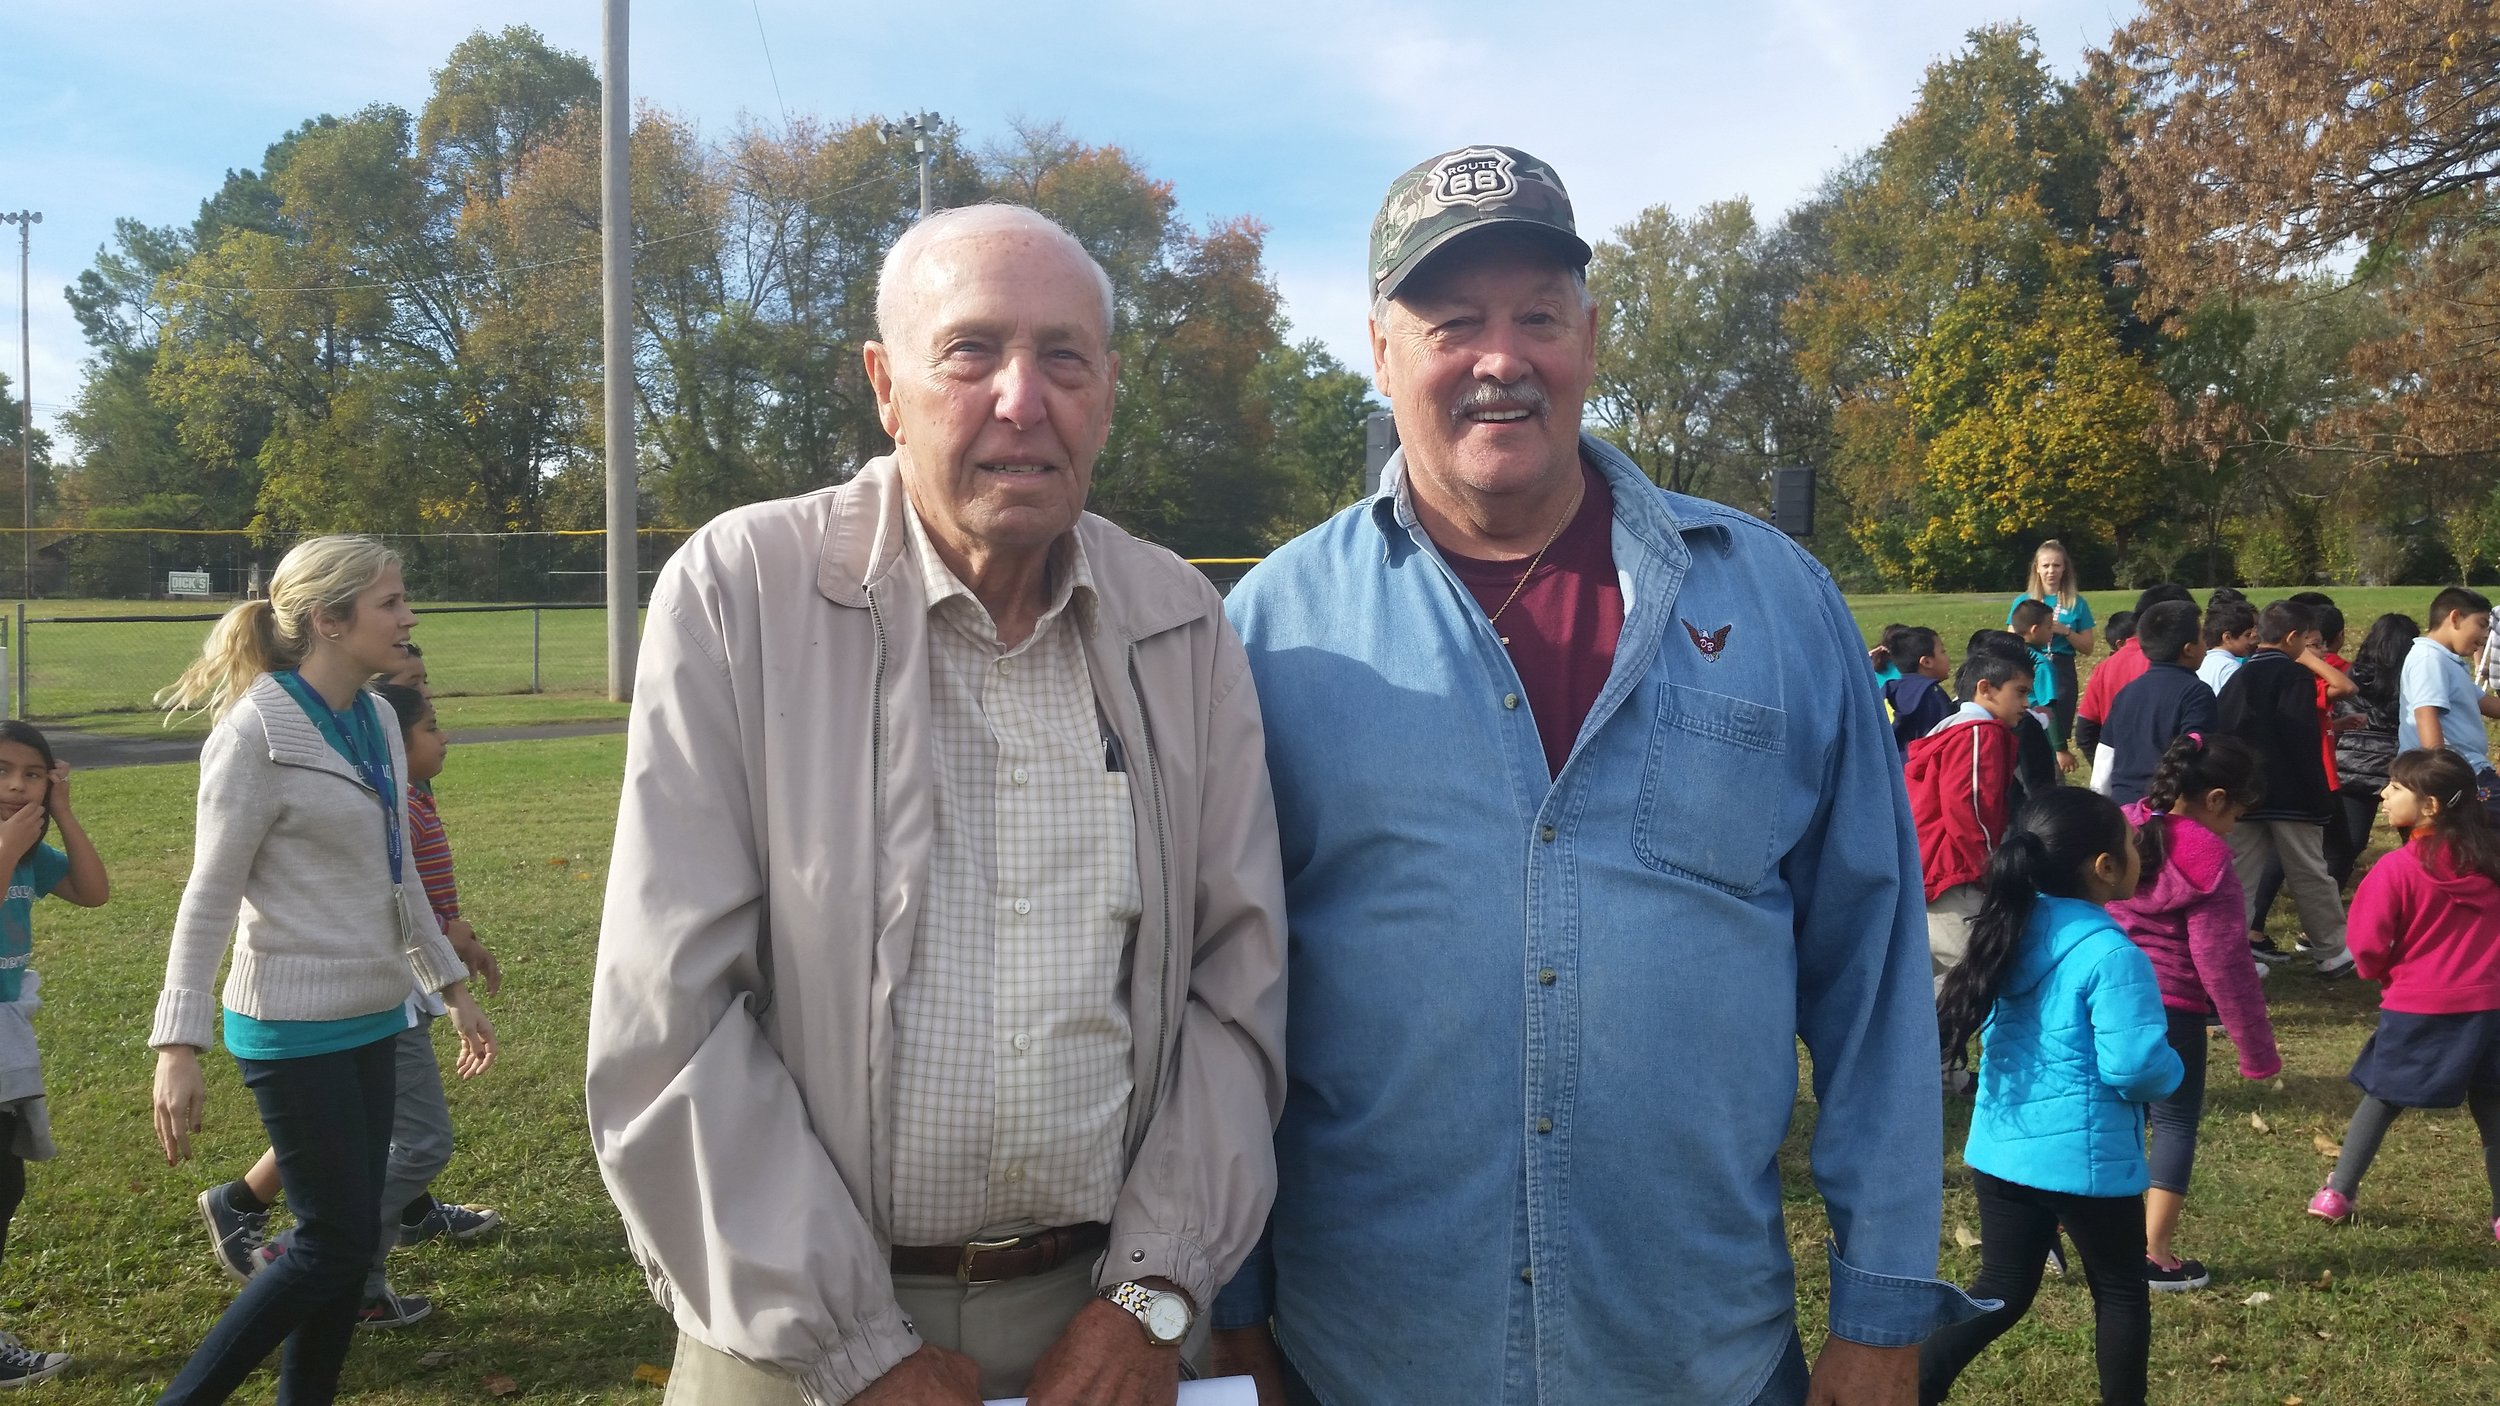 Tusculum School Neighbors Roy Black and Don Brown attended the school's groundbreaking ceremony held October 29.